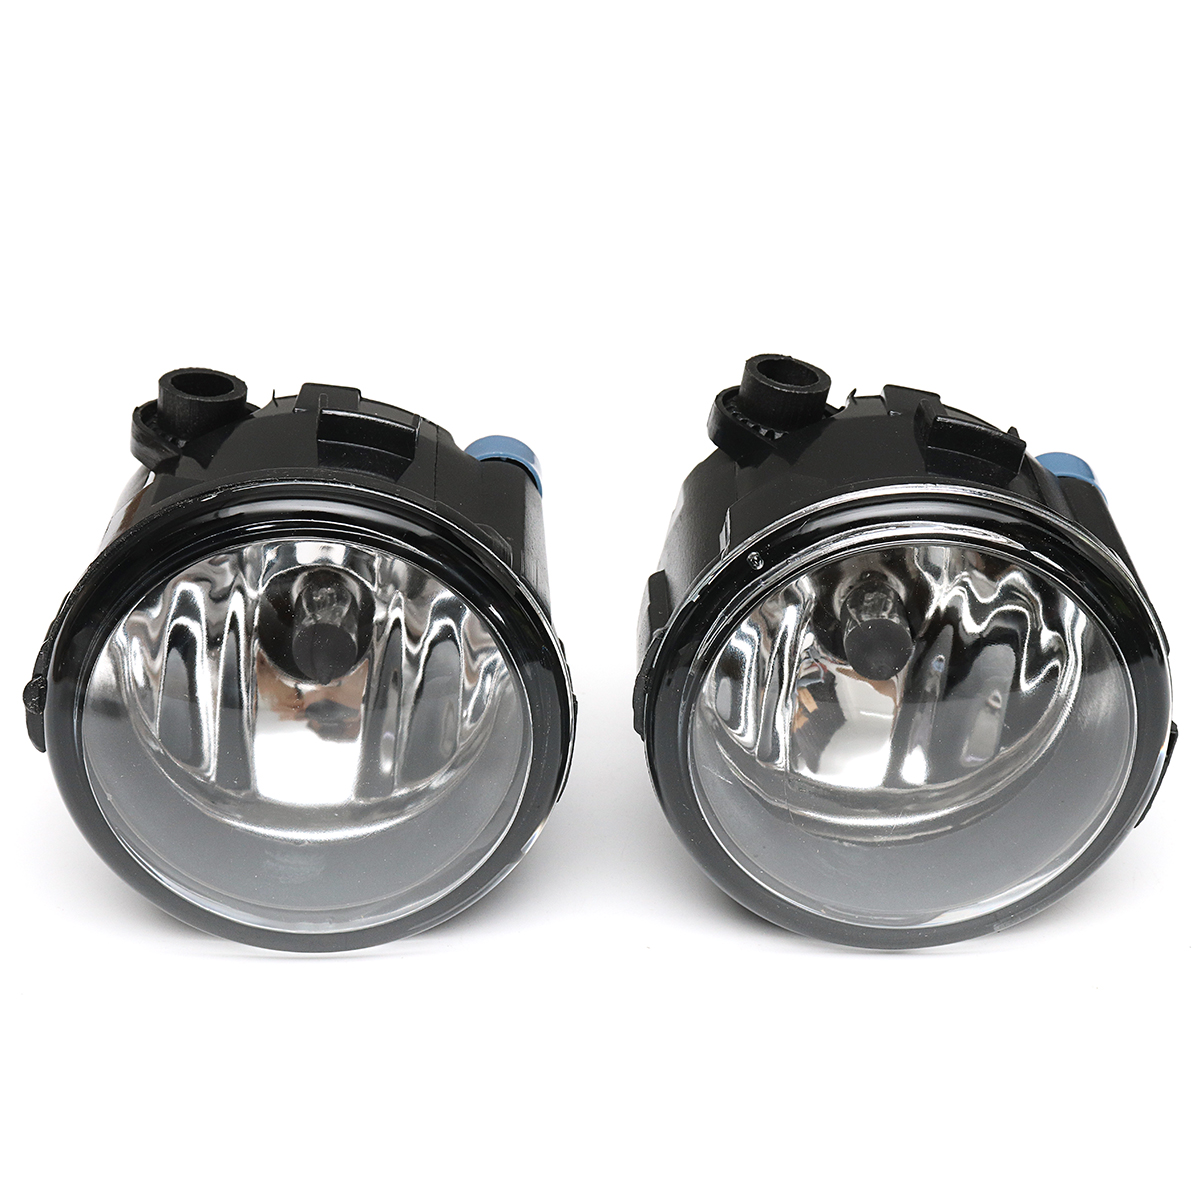 1 Pair H11 Yellow Front Car Fog Lights Front Bumper Lamp with Switch for Nissan Versa 07-11